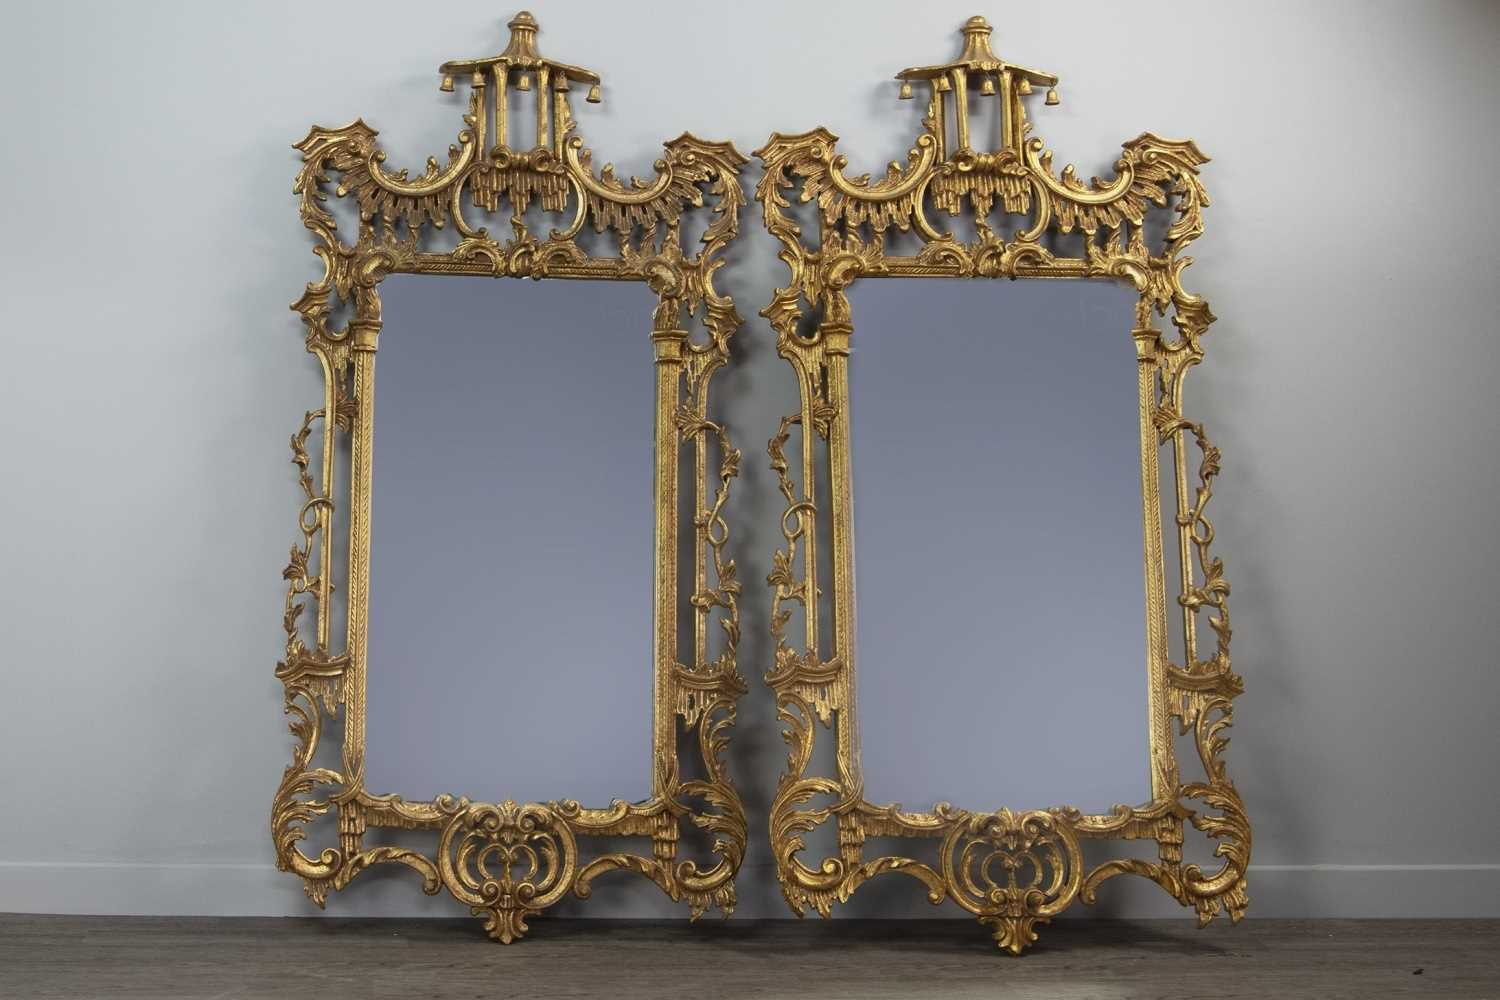 Lot 1349 - A PAIR OF GILT UPRIGHT WALL MIRRORS OF CHIPPENDALE DESIGN